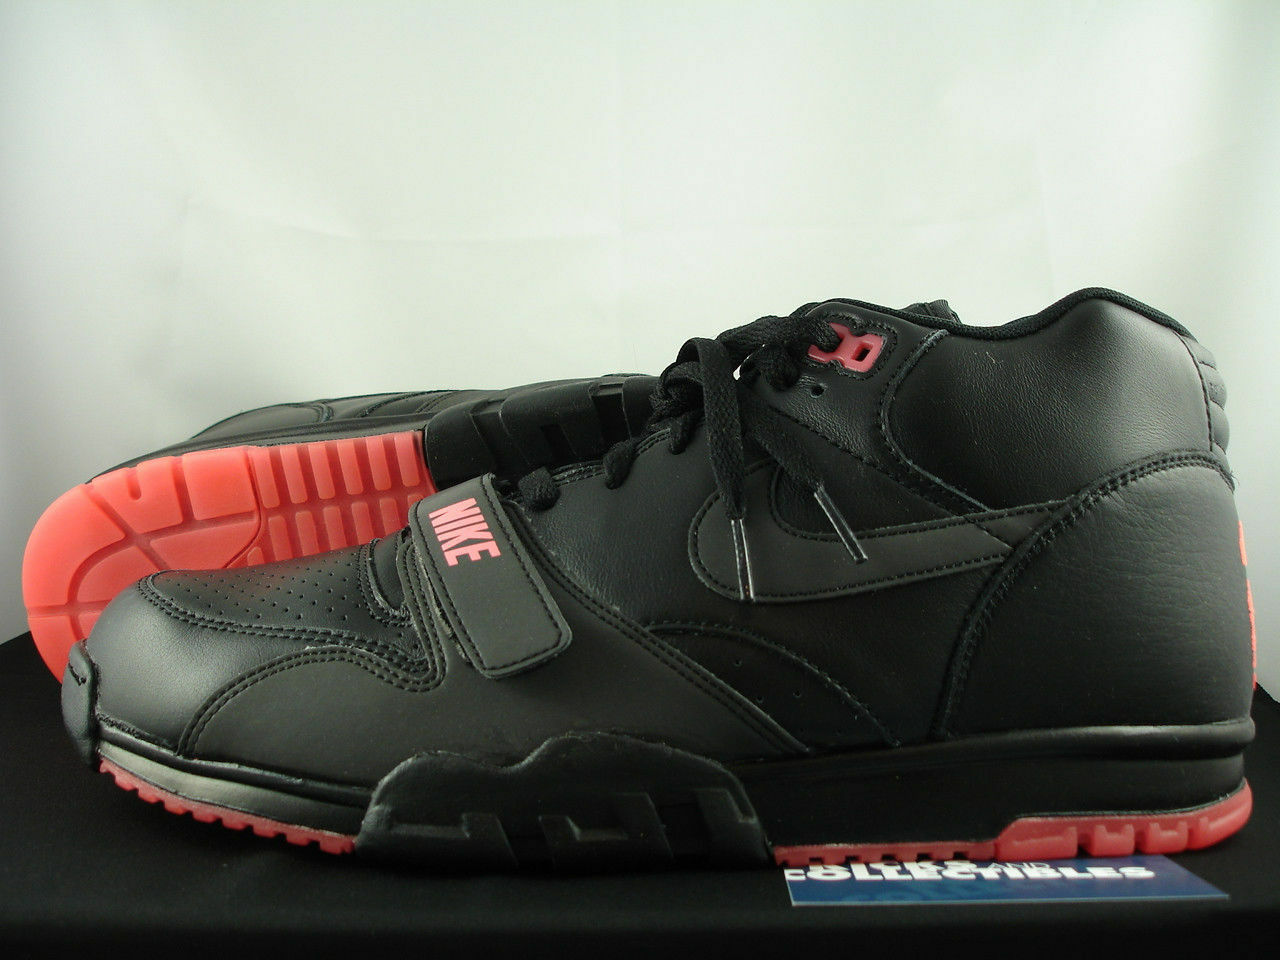 Nike air trainer 1 9,5 10 10,5 ny md prm nrg 532303 001 revis insel ny 10,5 galaxie m 2125fe